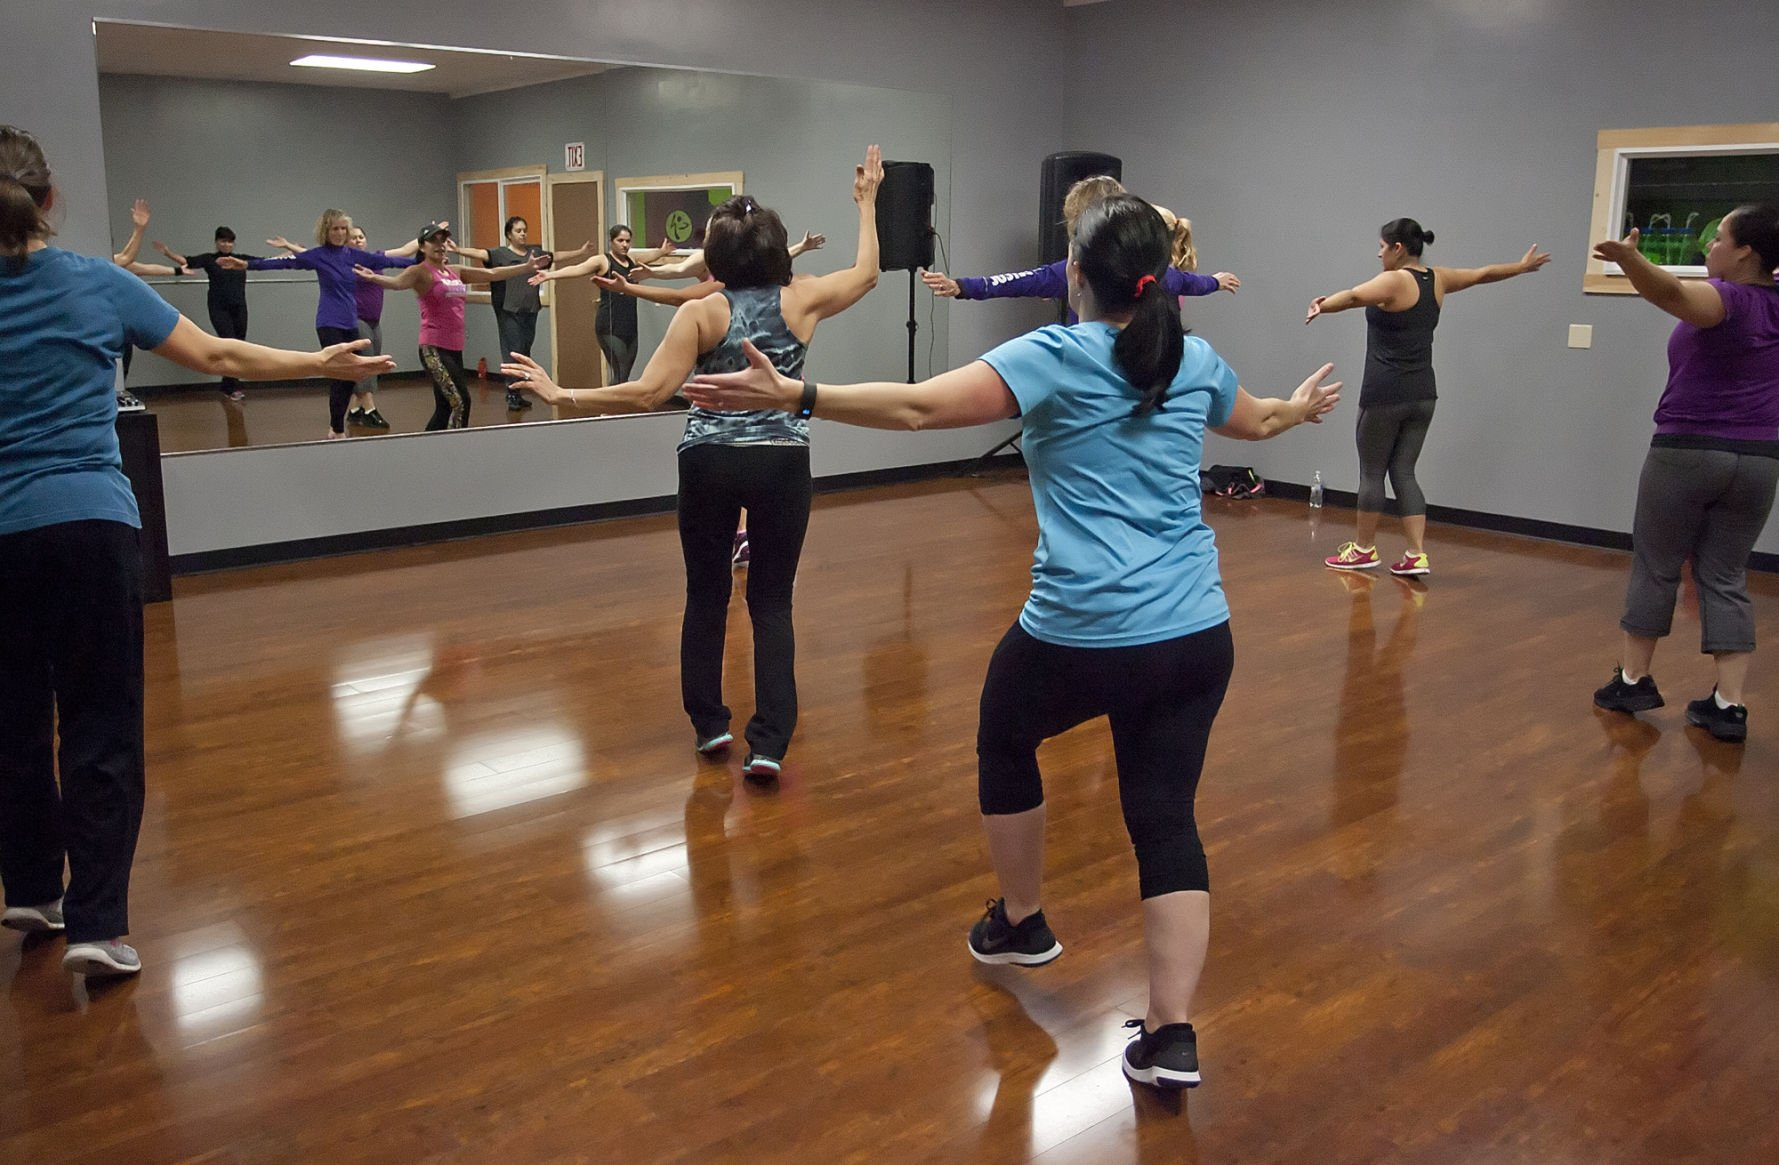 New studio provides space for dance fitness